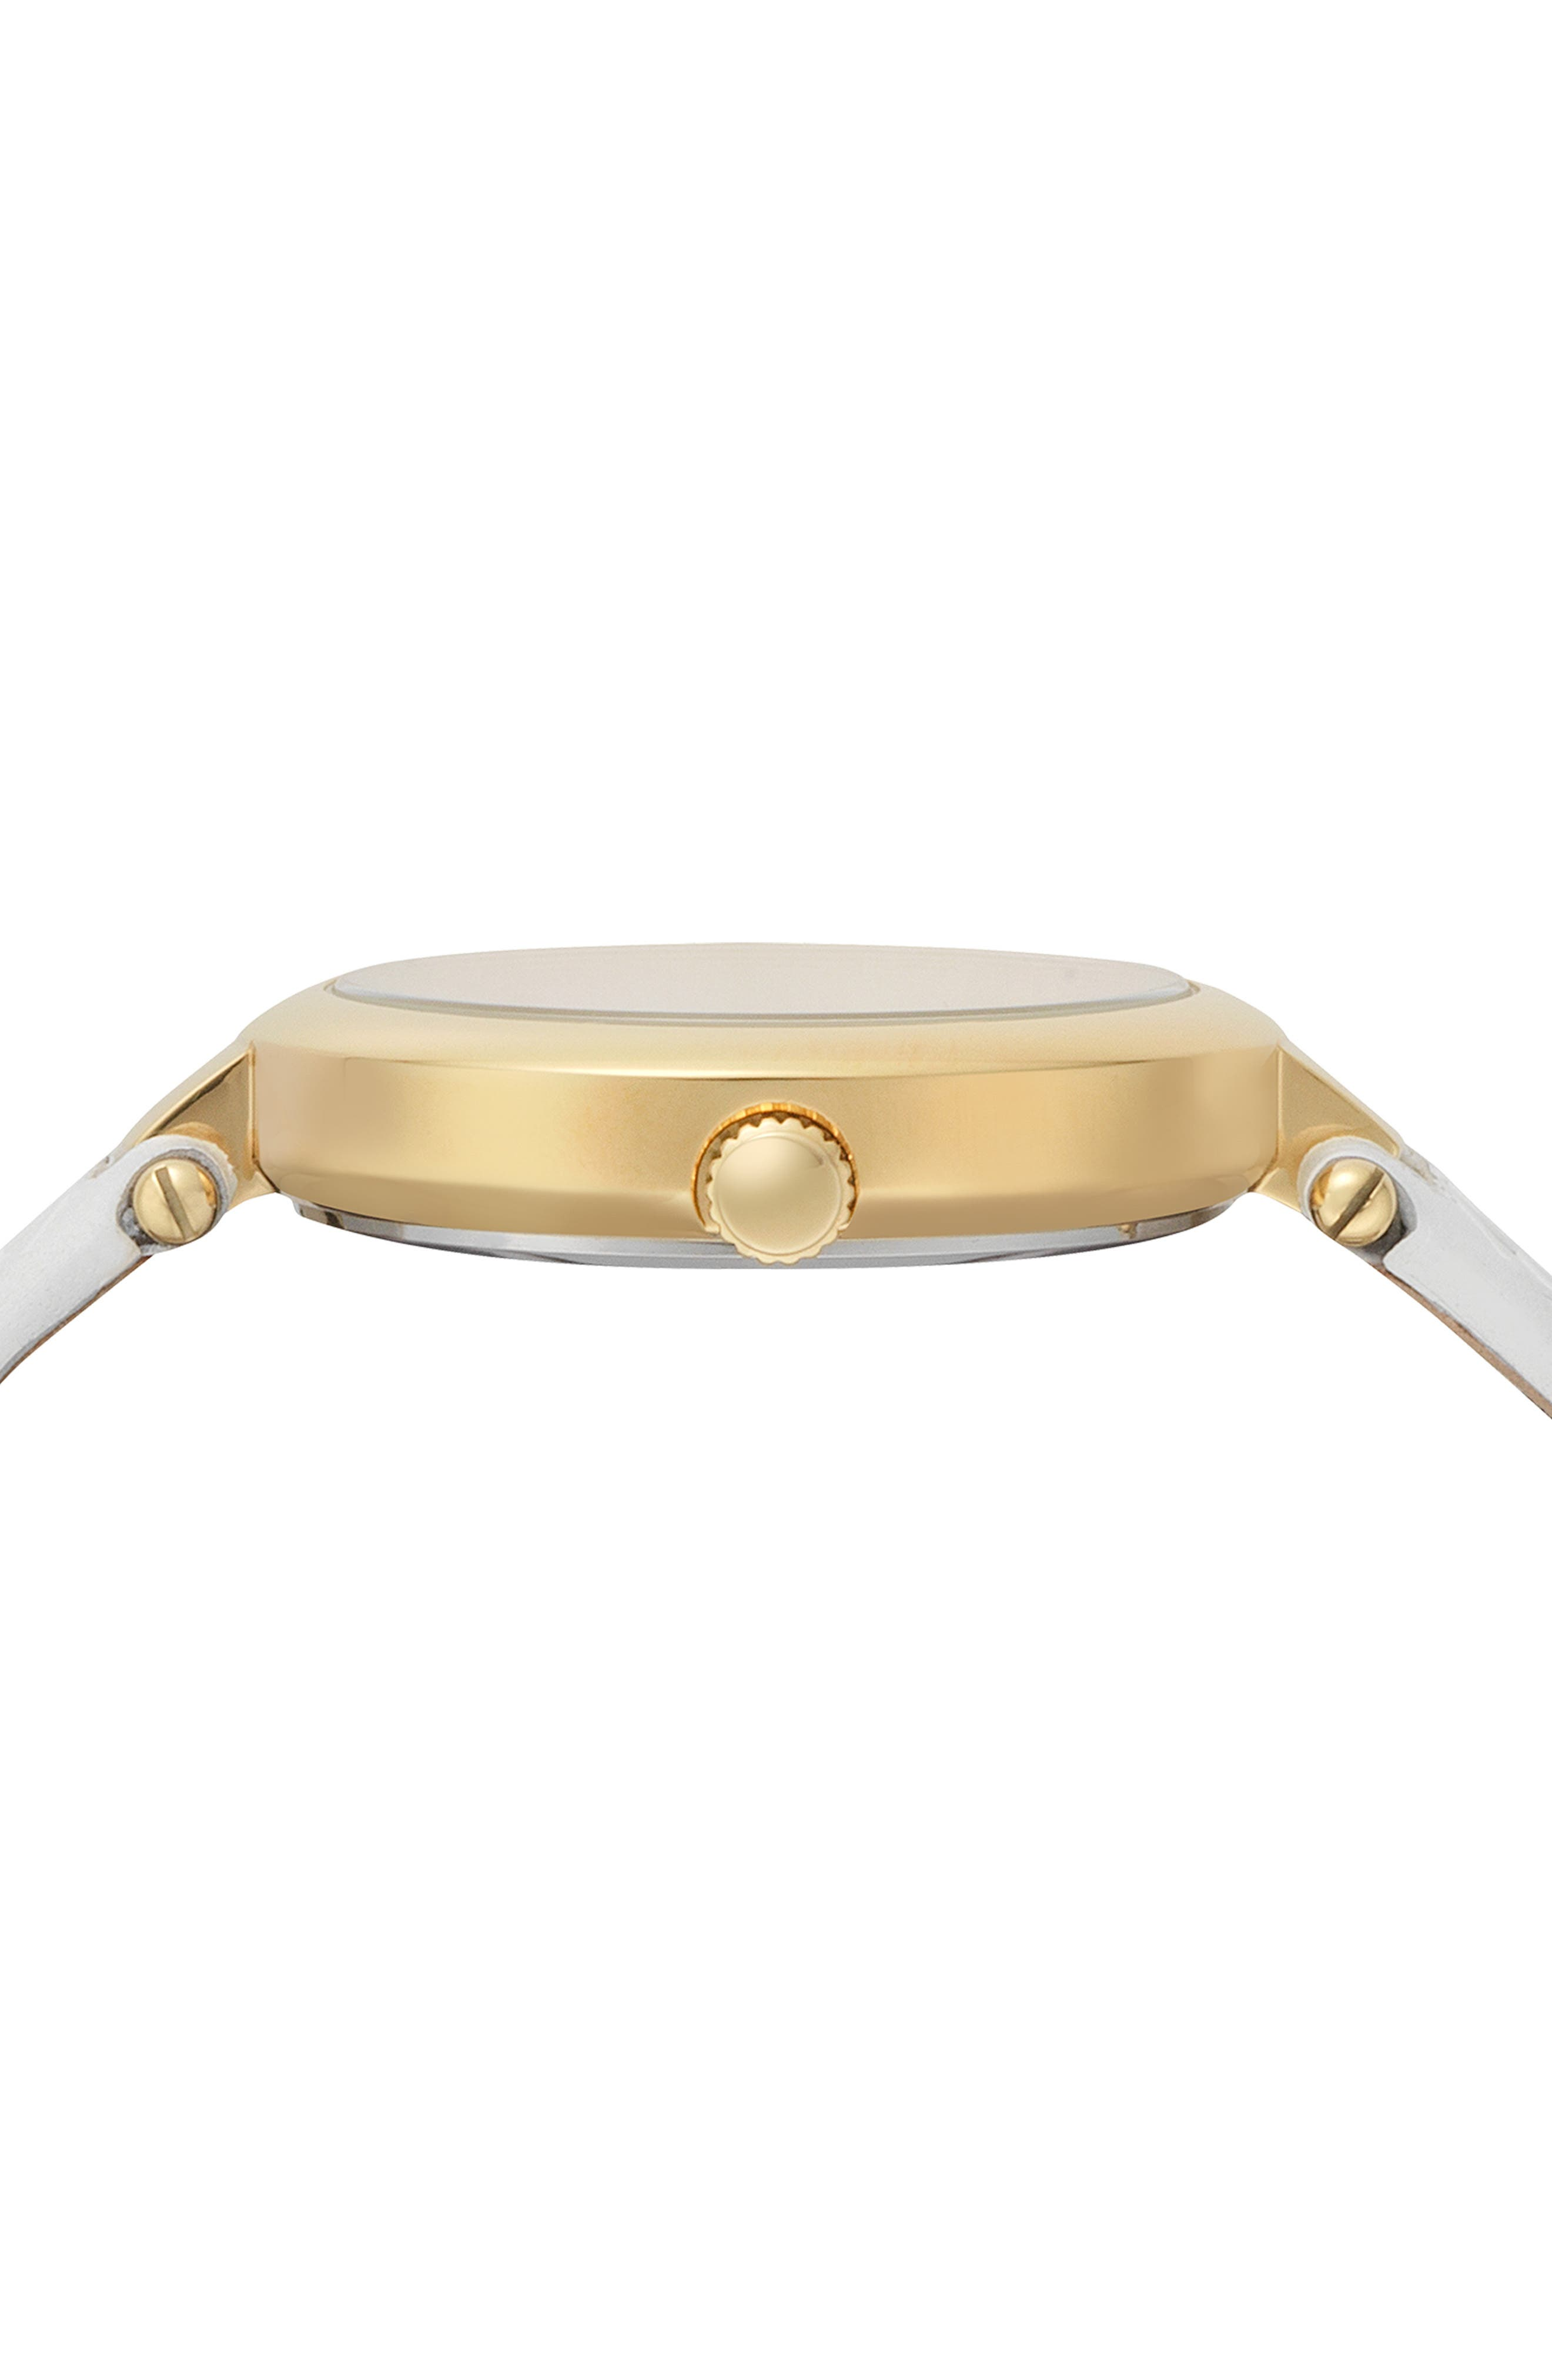 VERSUS VERSACE, Buffle Bay Leather Strap Watch, 36mm, Alternate thumbnail 2, color, WHITE/ GOLD